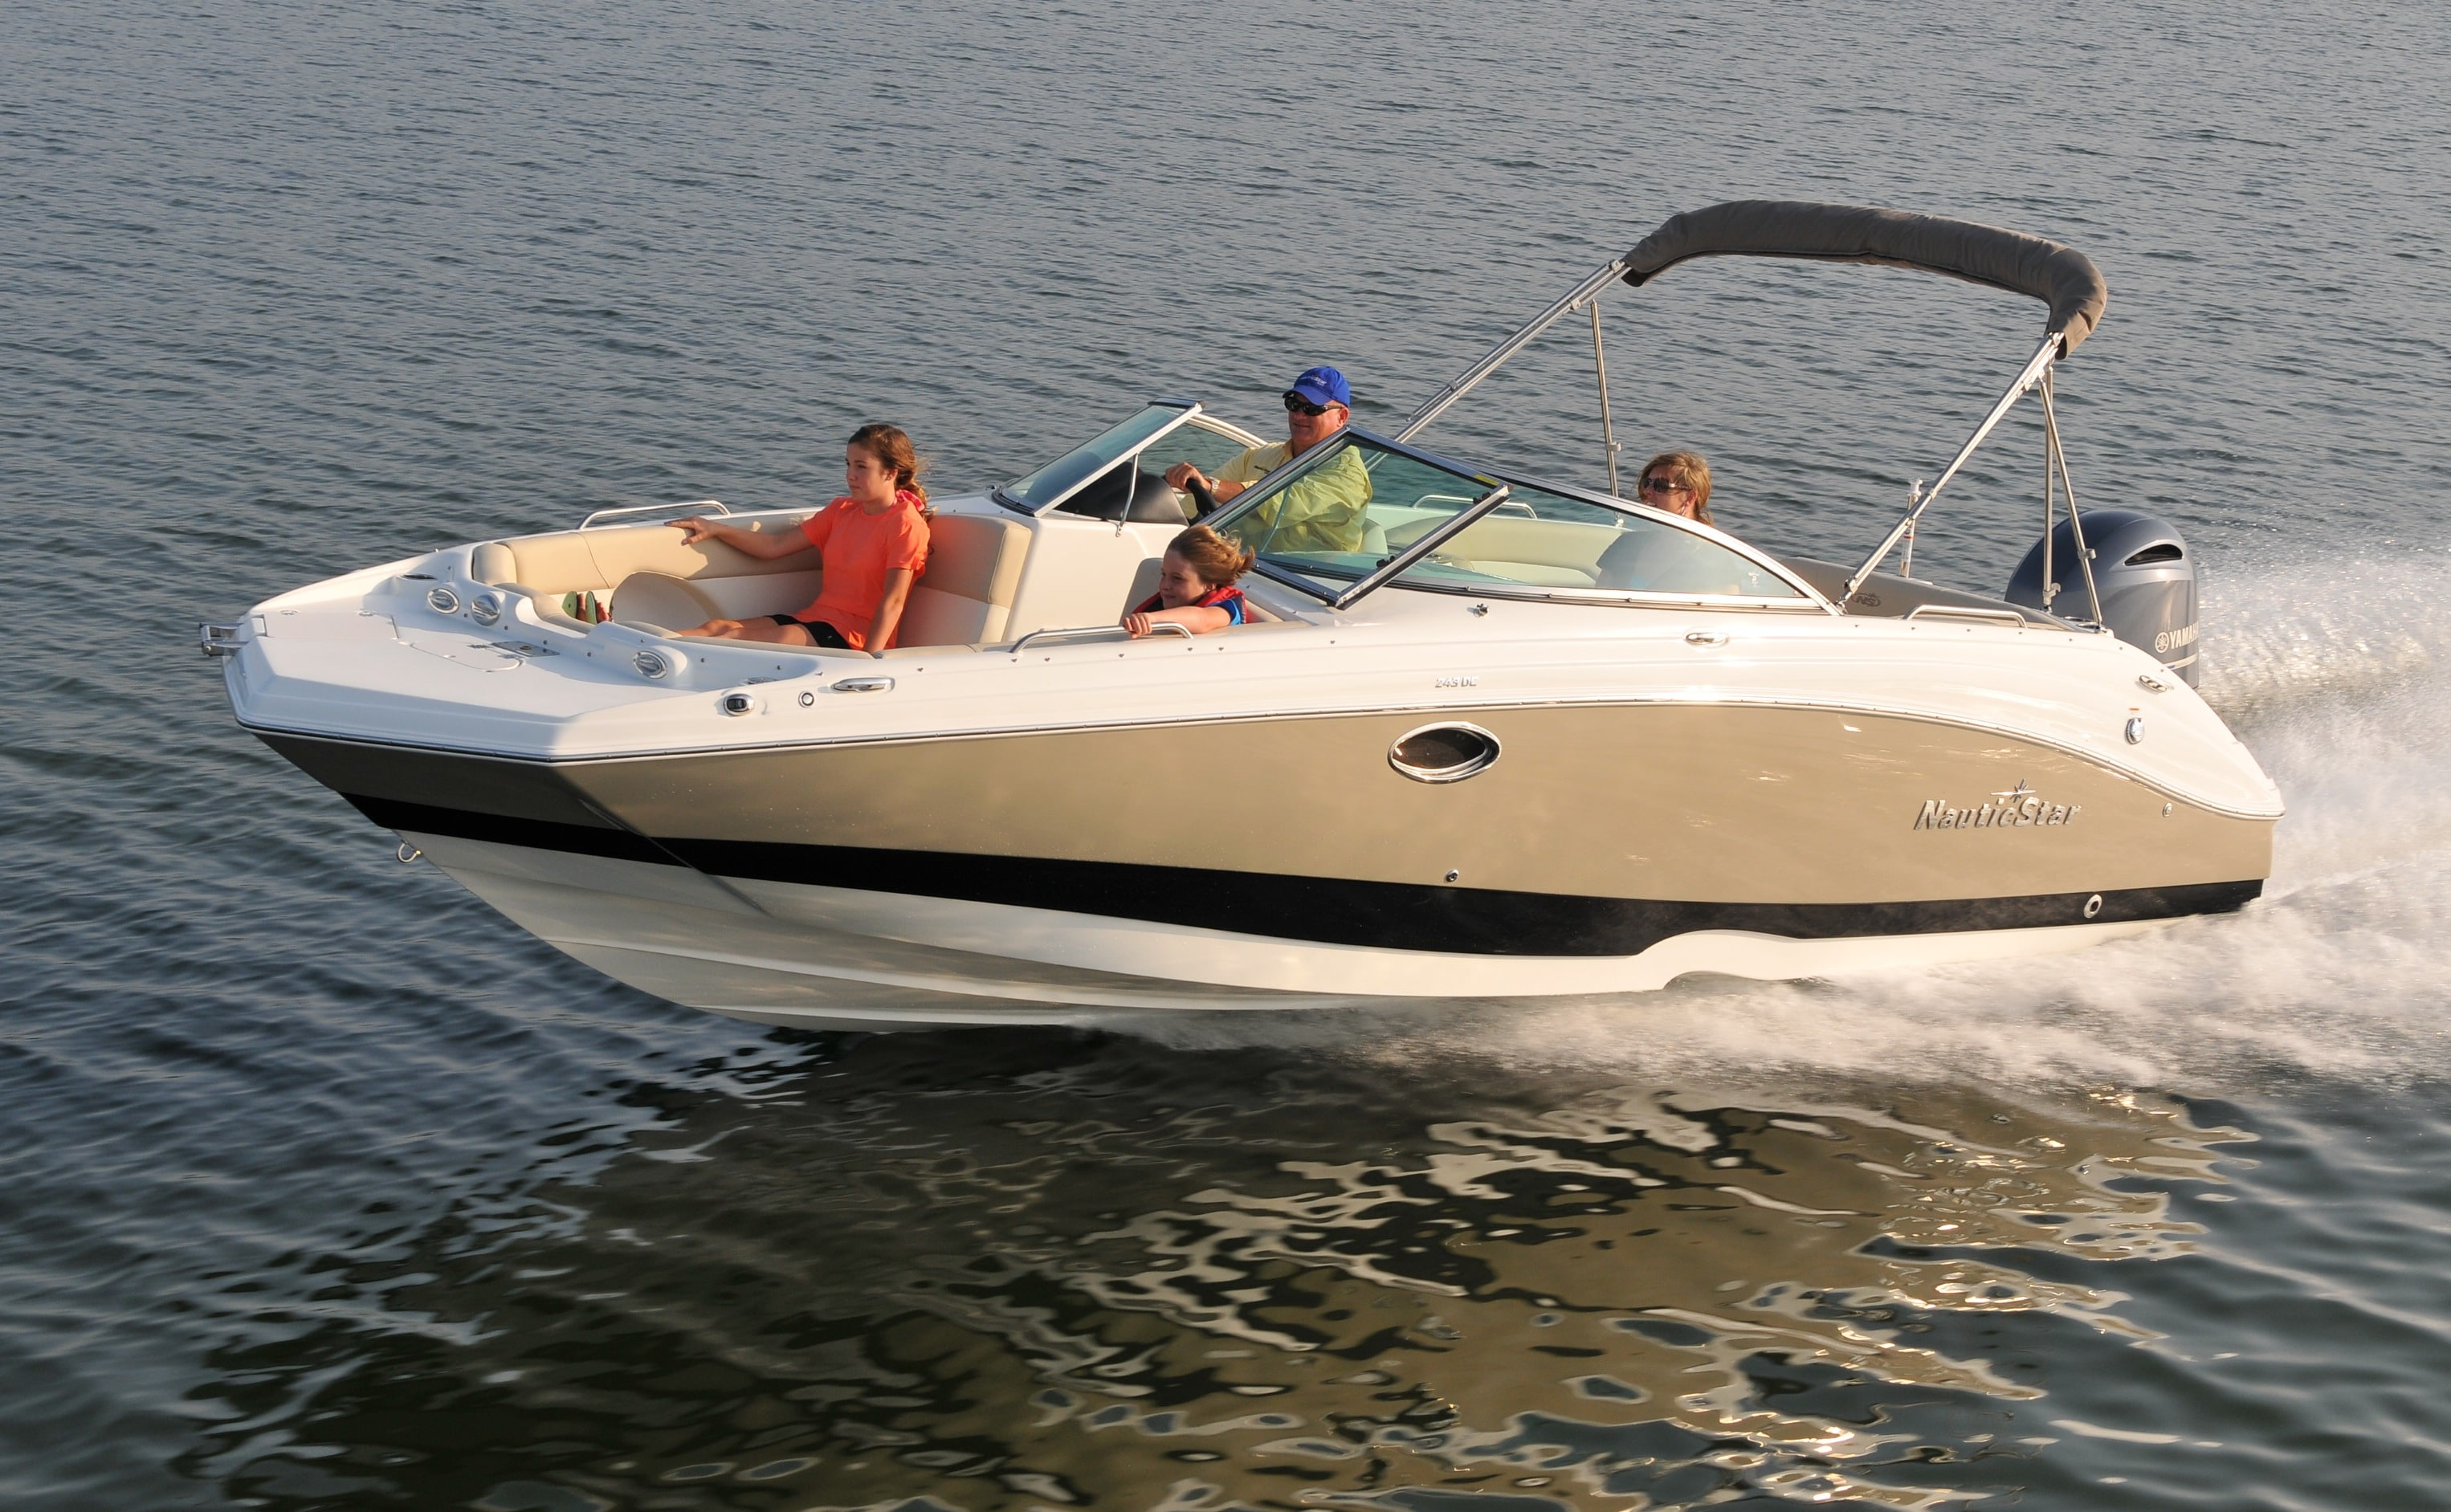 The NauticStar 243 DC Dual Console Sport Deck Boat